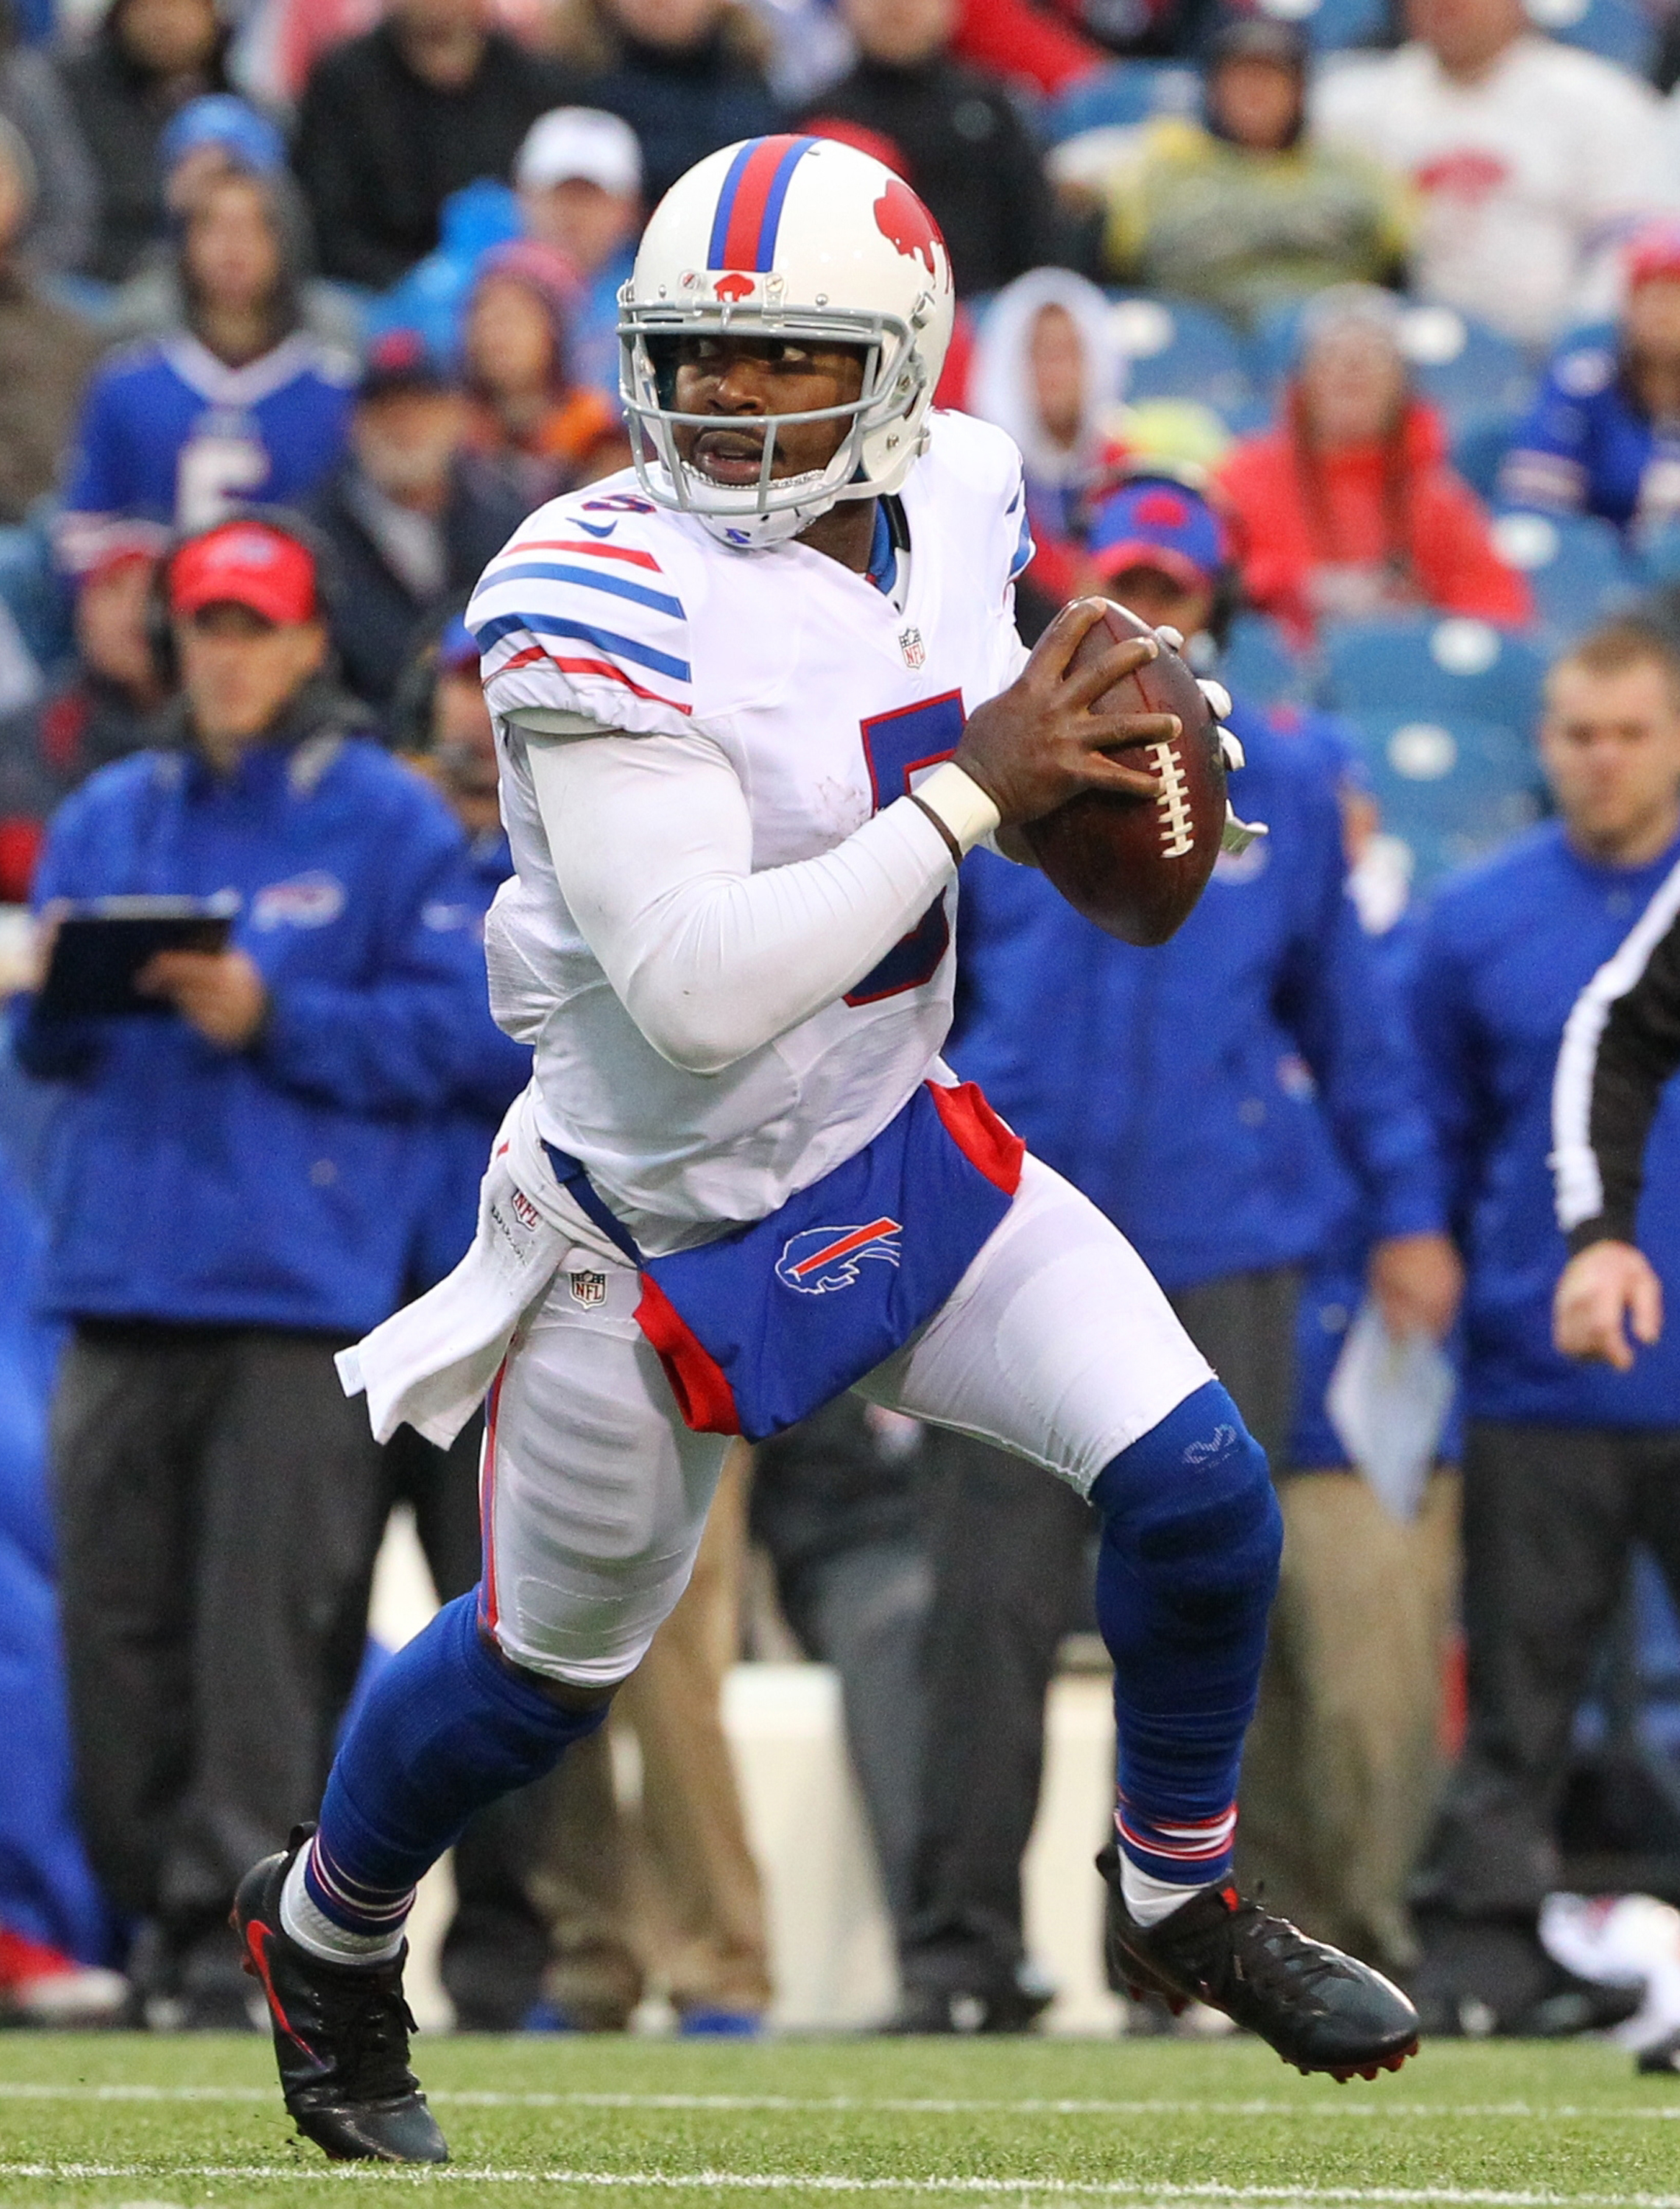 FILE - In this Oct. 30, 2016, file photo, Buffalo Bills quarterback Tyrod Taylor (5) runs with the ball during the second half of an NFL football game against the New England Patriots, in Orchard Park, N.Y. The Buffalo Bills host the Bengals on Sunday. (A